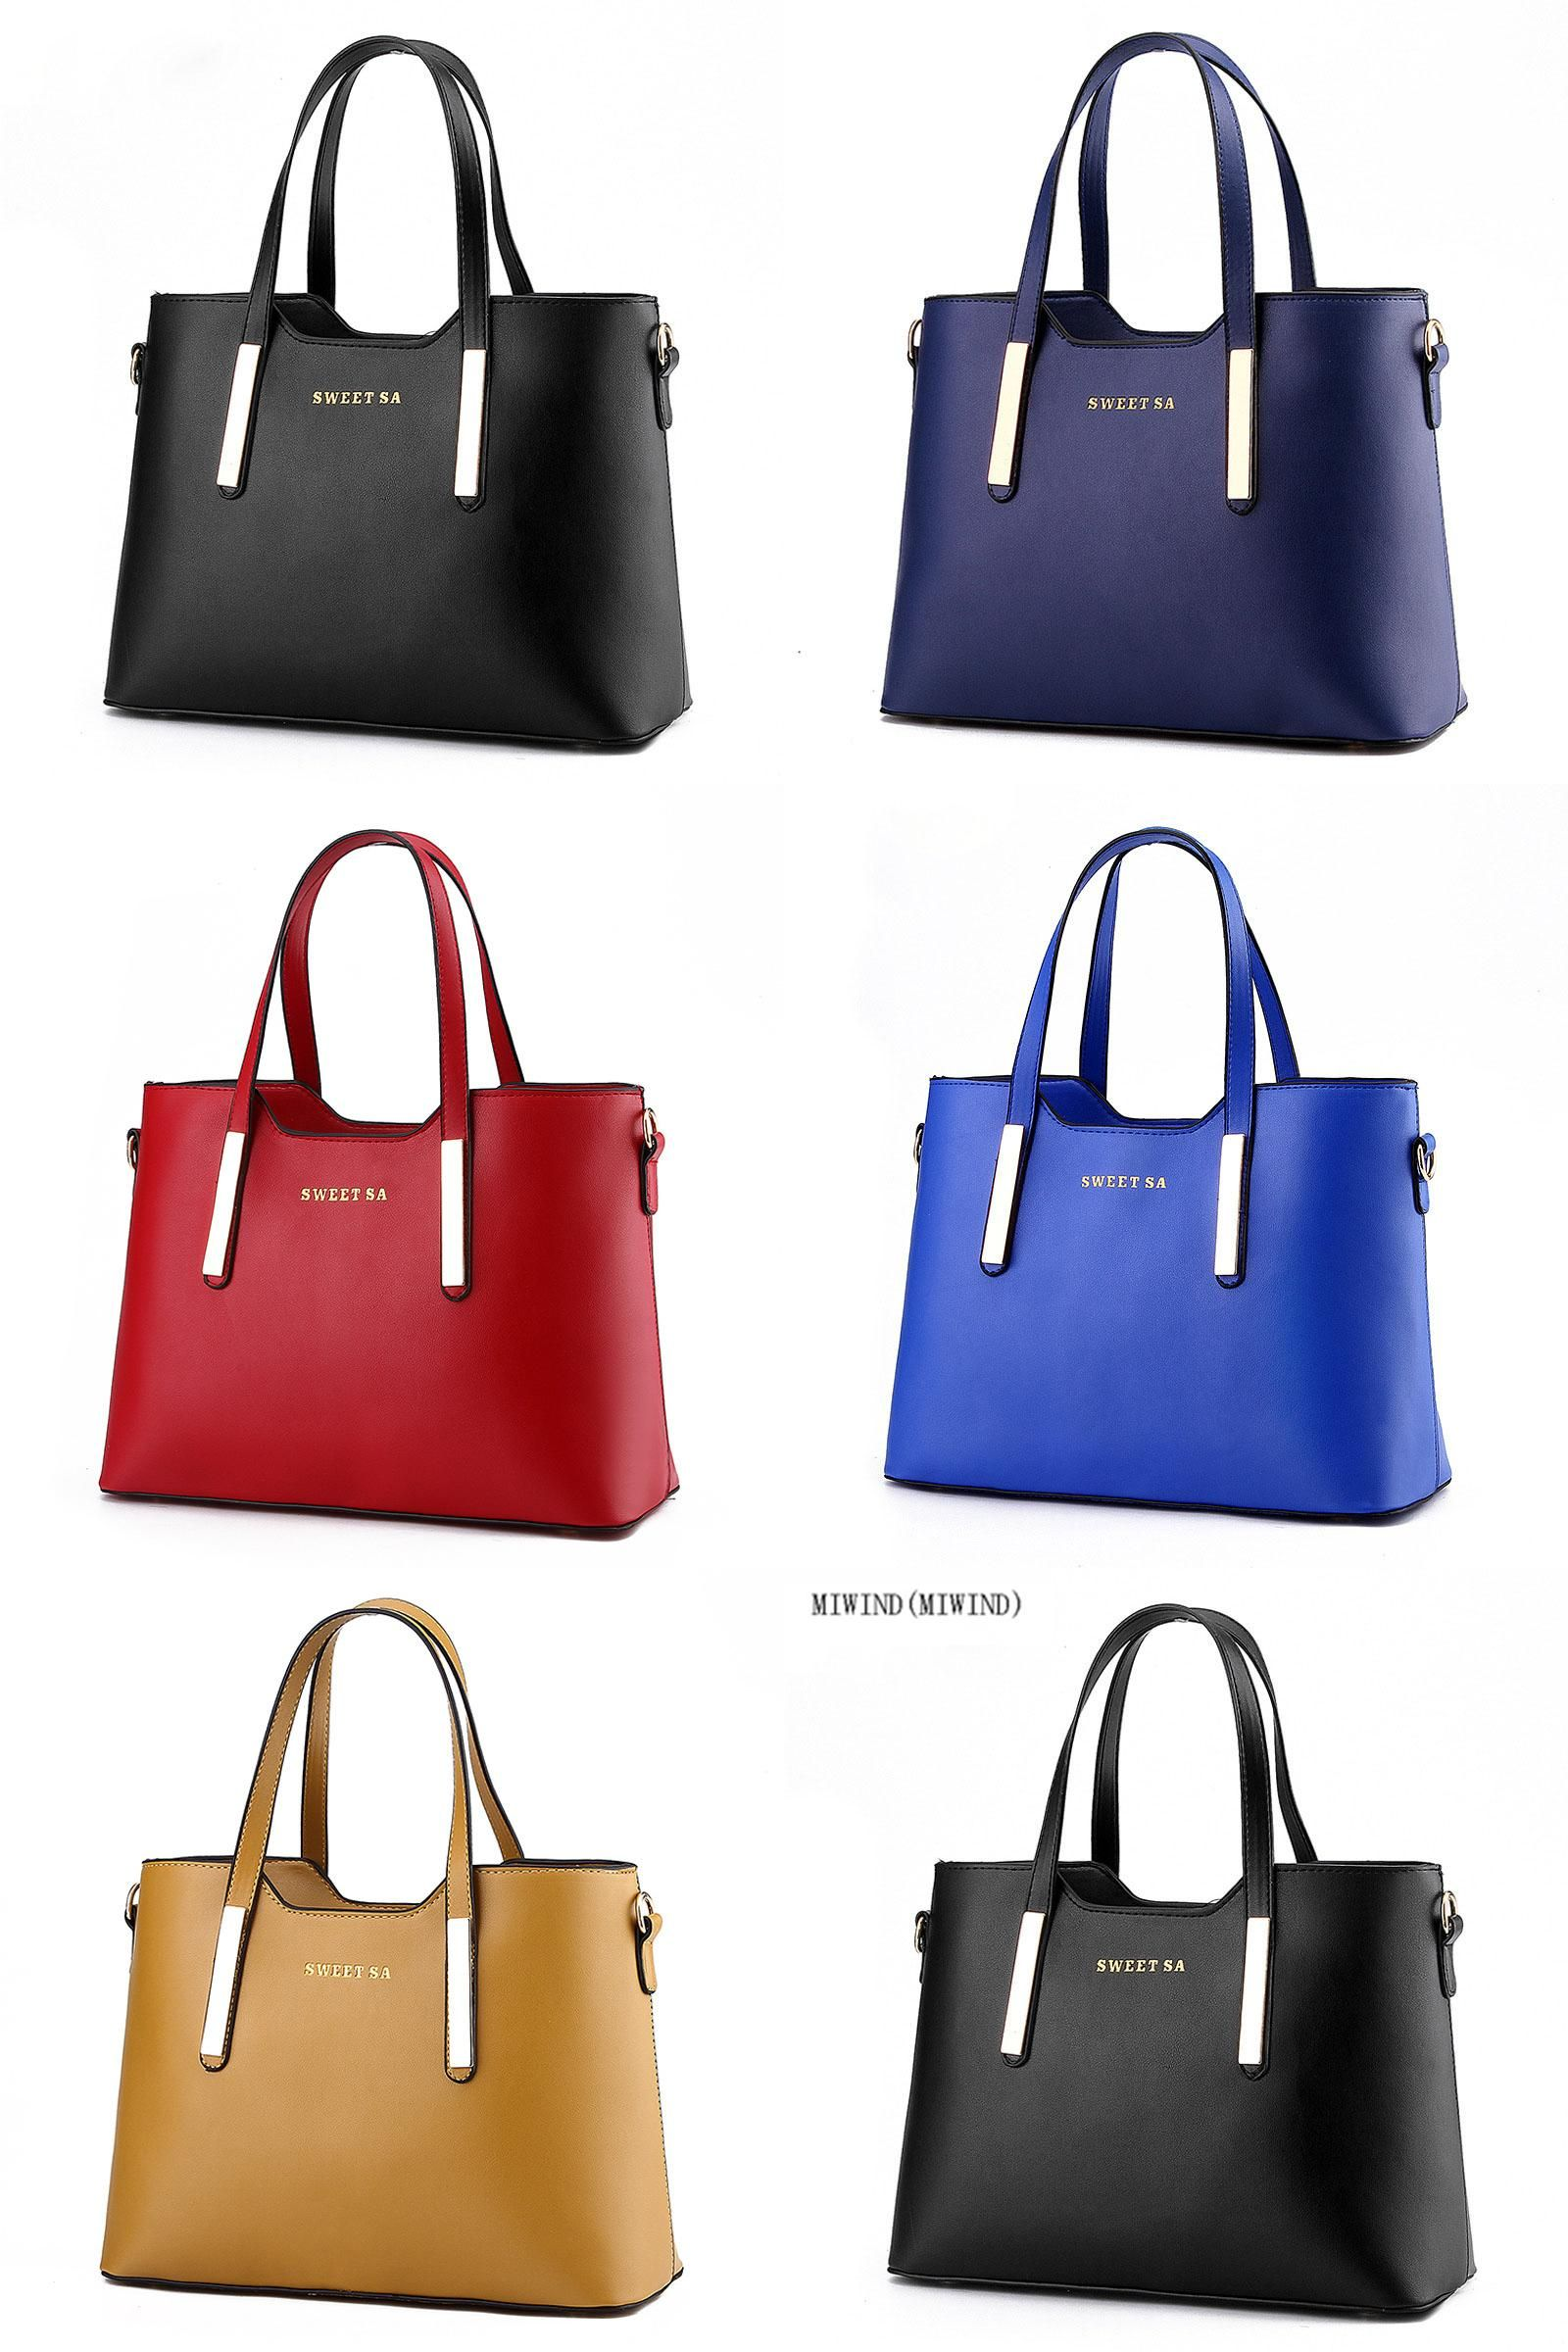 db838e37a9c  Visit to Buy  MIWIND(MIWIND)Handbags new commuter fashion bag female  stereotypes